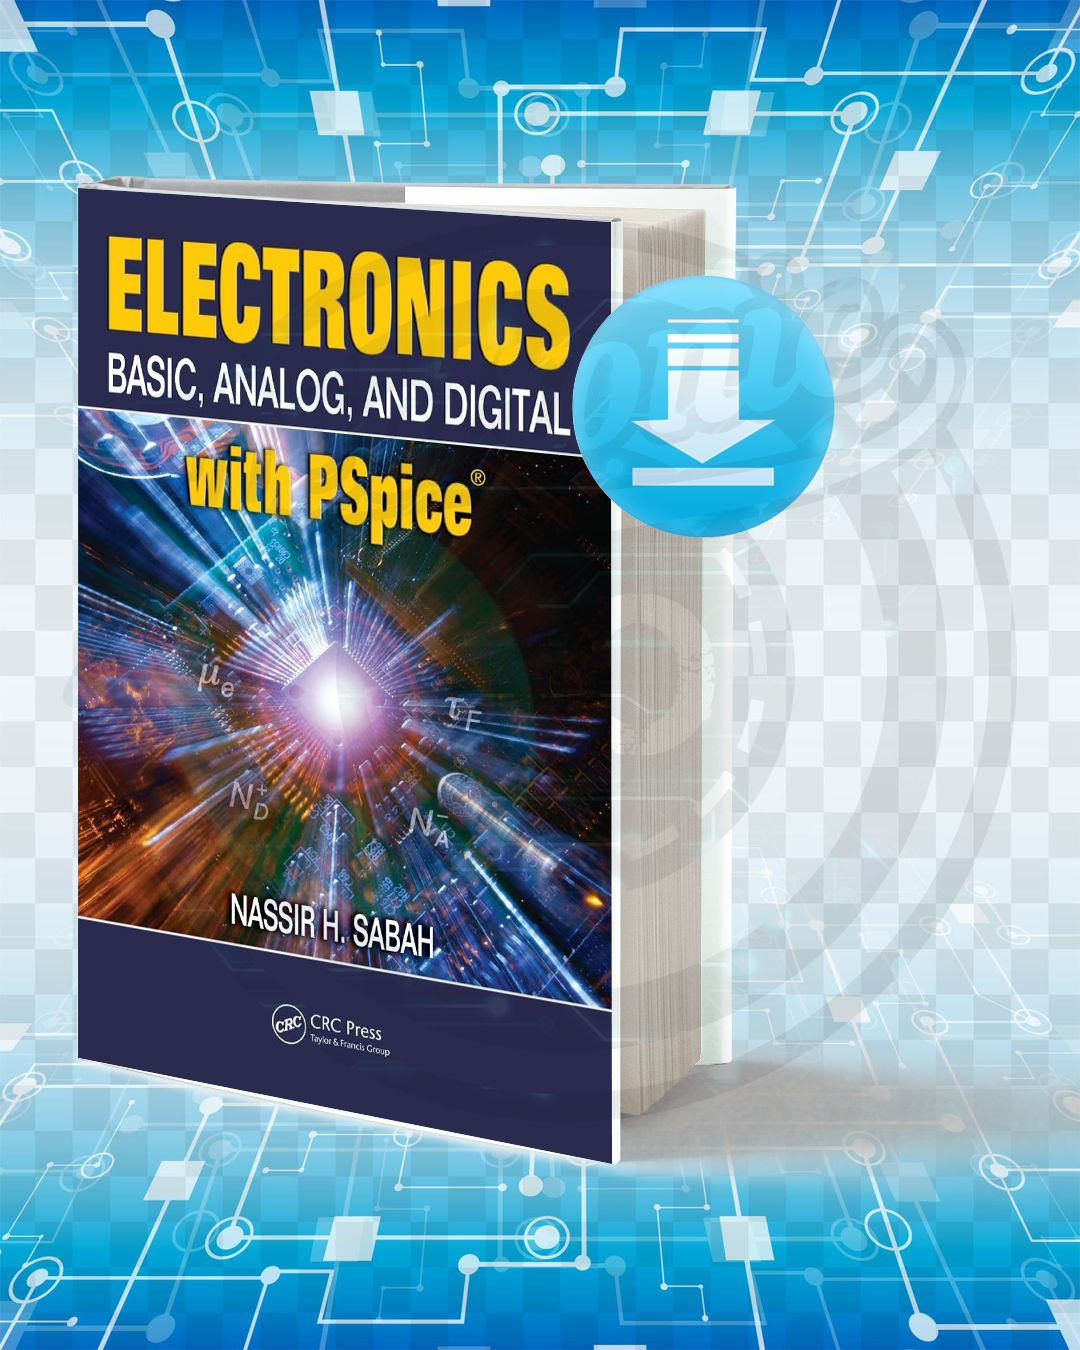 Download Electronics Basic Analog And Digital With Pspice In 2020 Electrical Engineering Books Electronics Basics Electronic Circuit Projects